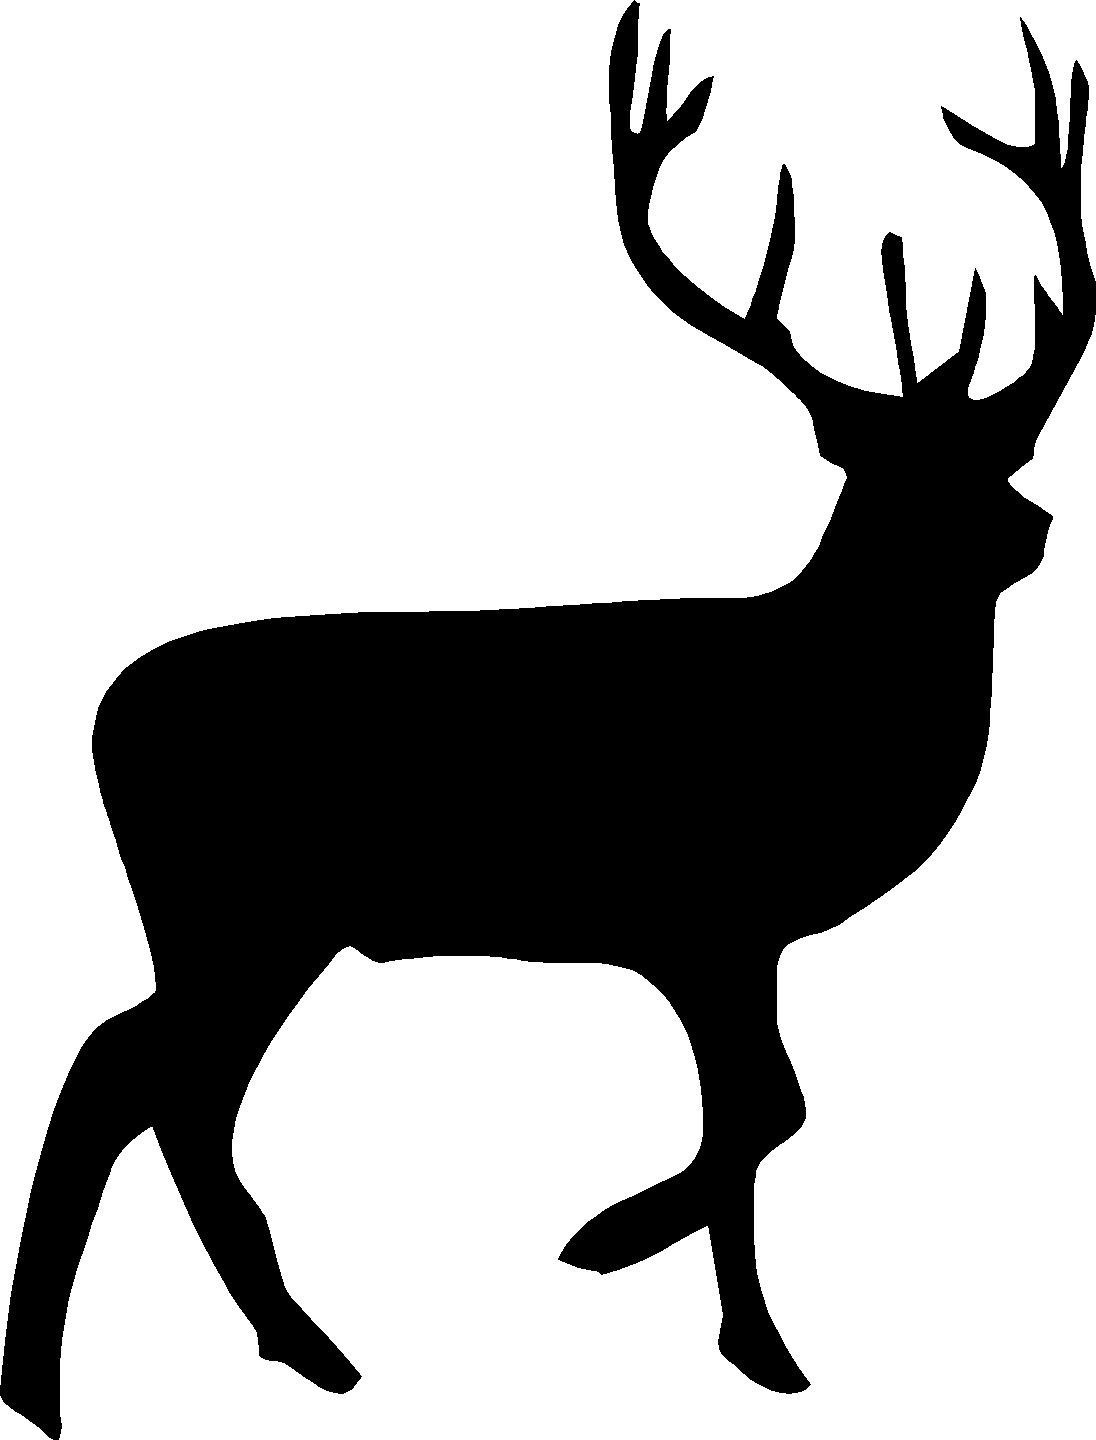 Buck with bow clipart vector royalty free download Buck Deer Clip Art N8 free image vector royalty free download